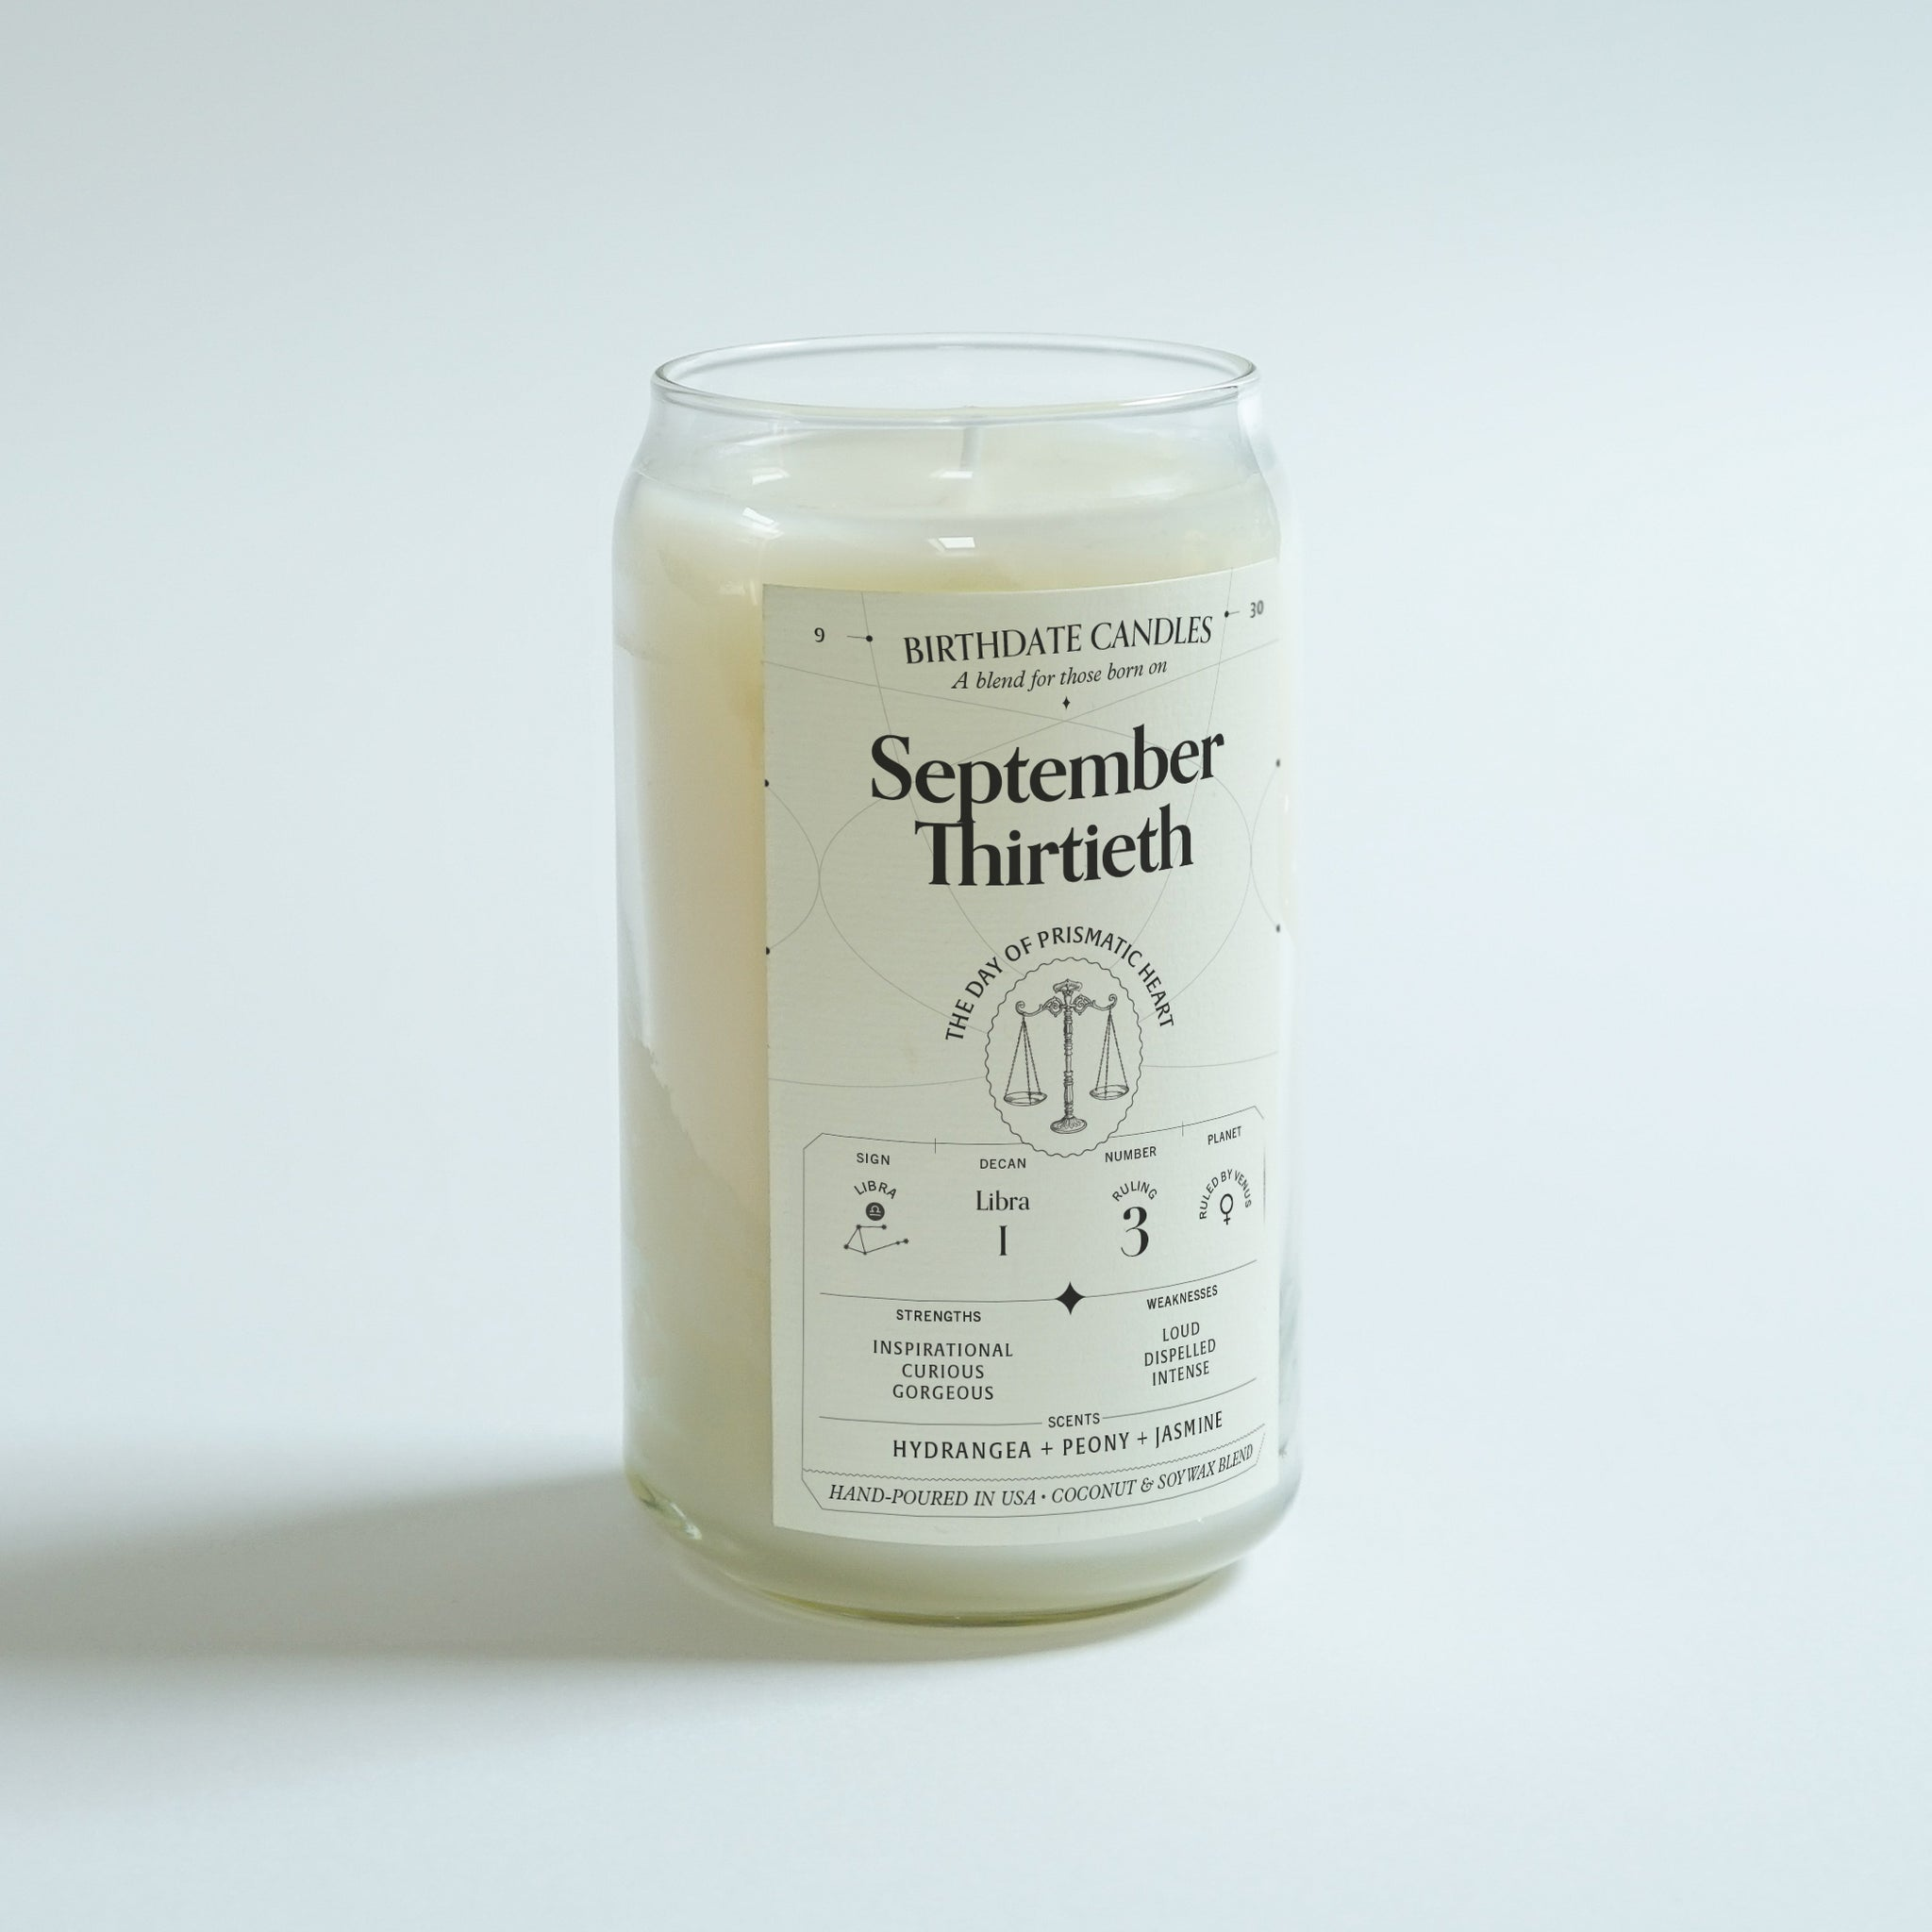 The September Thirtieth Birthday Candle